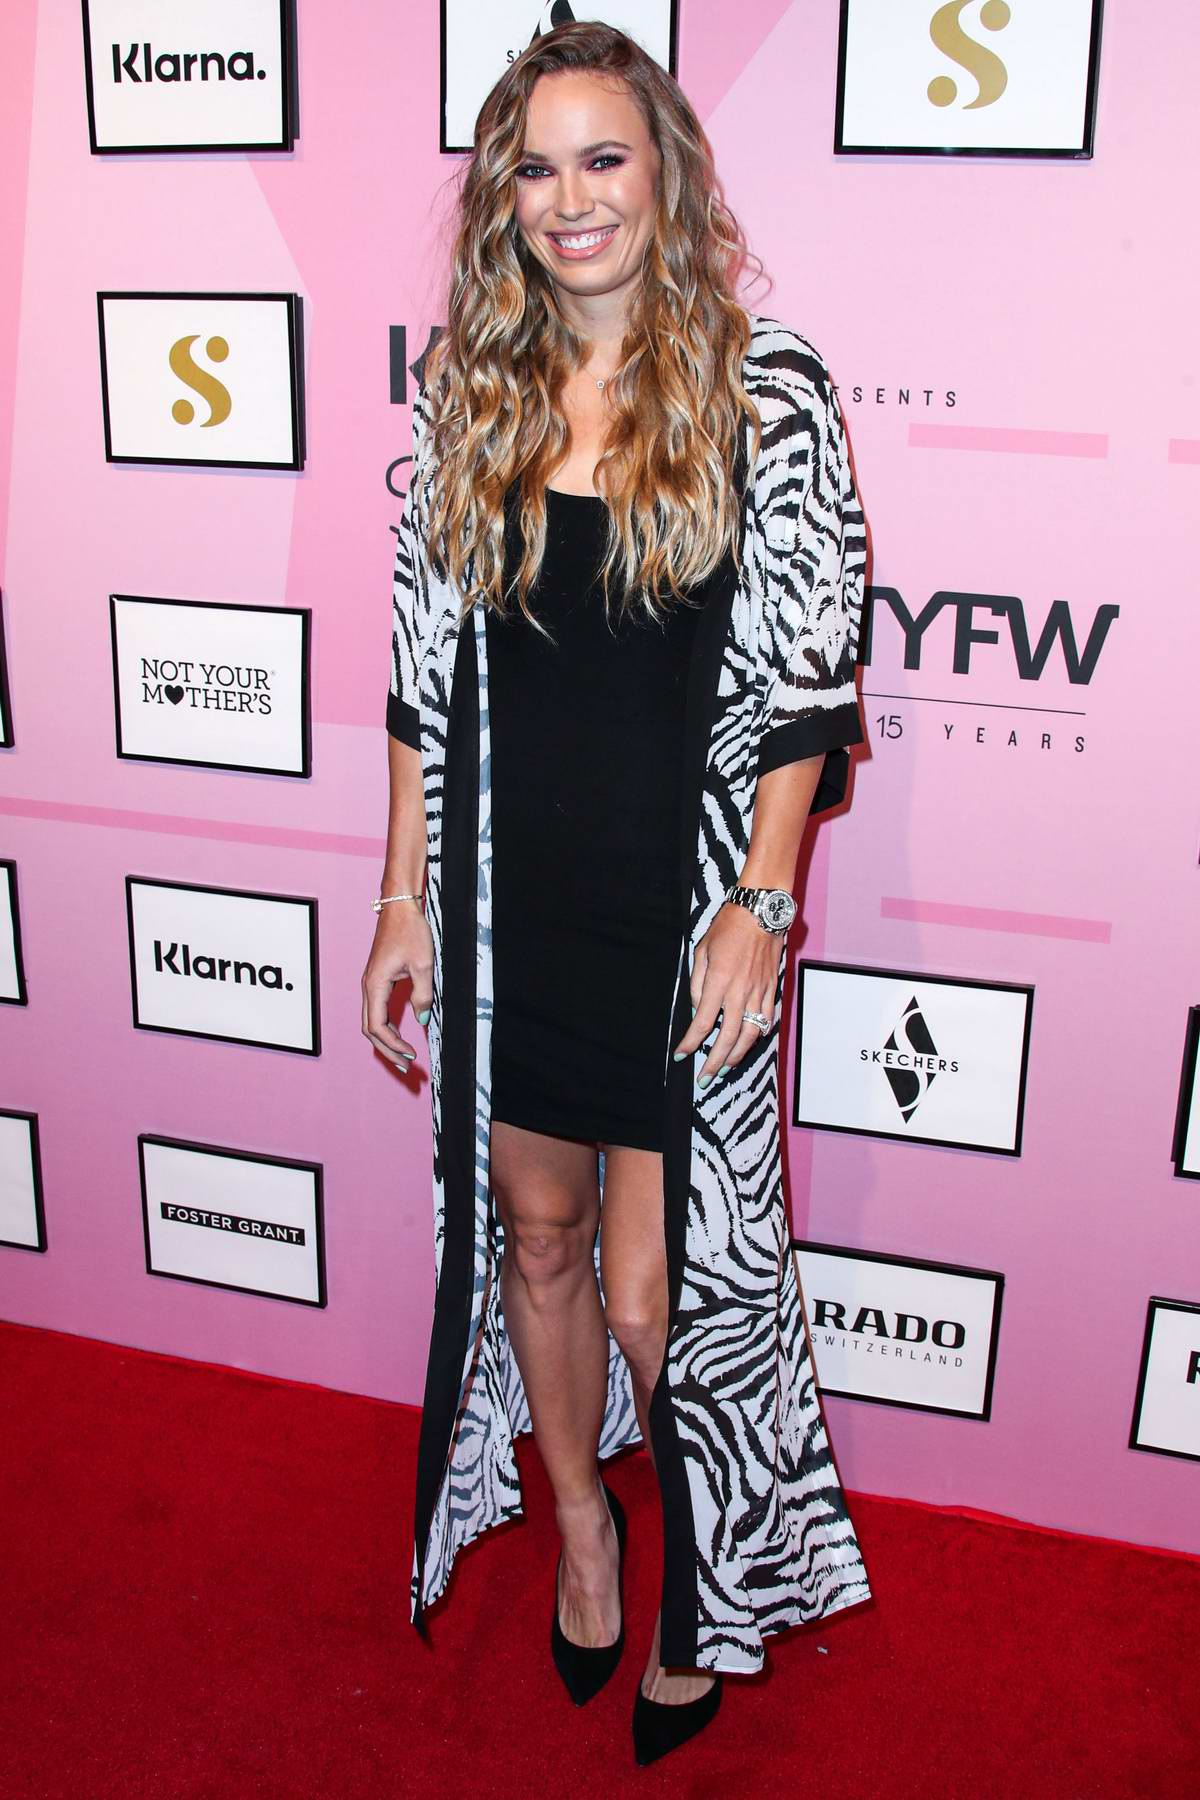 Caroline Wozniacki attends S by Serena Williams show during New York Fashion Week in New York City